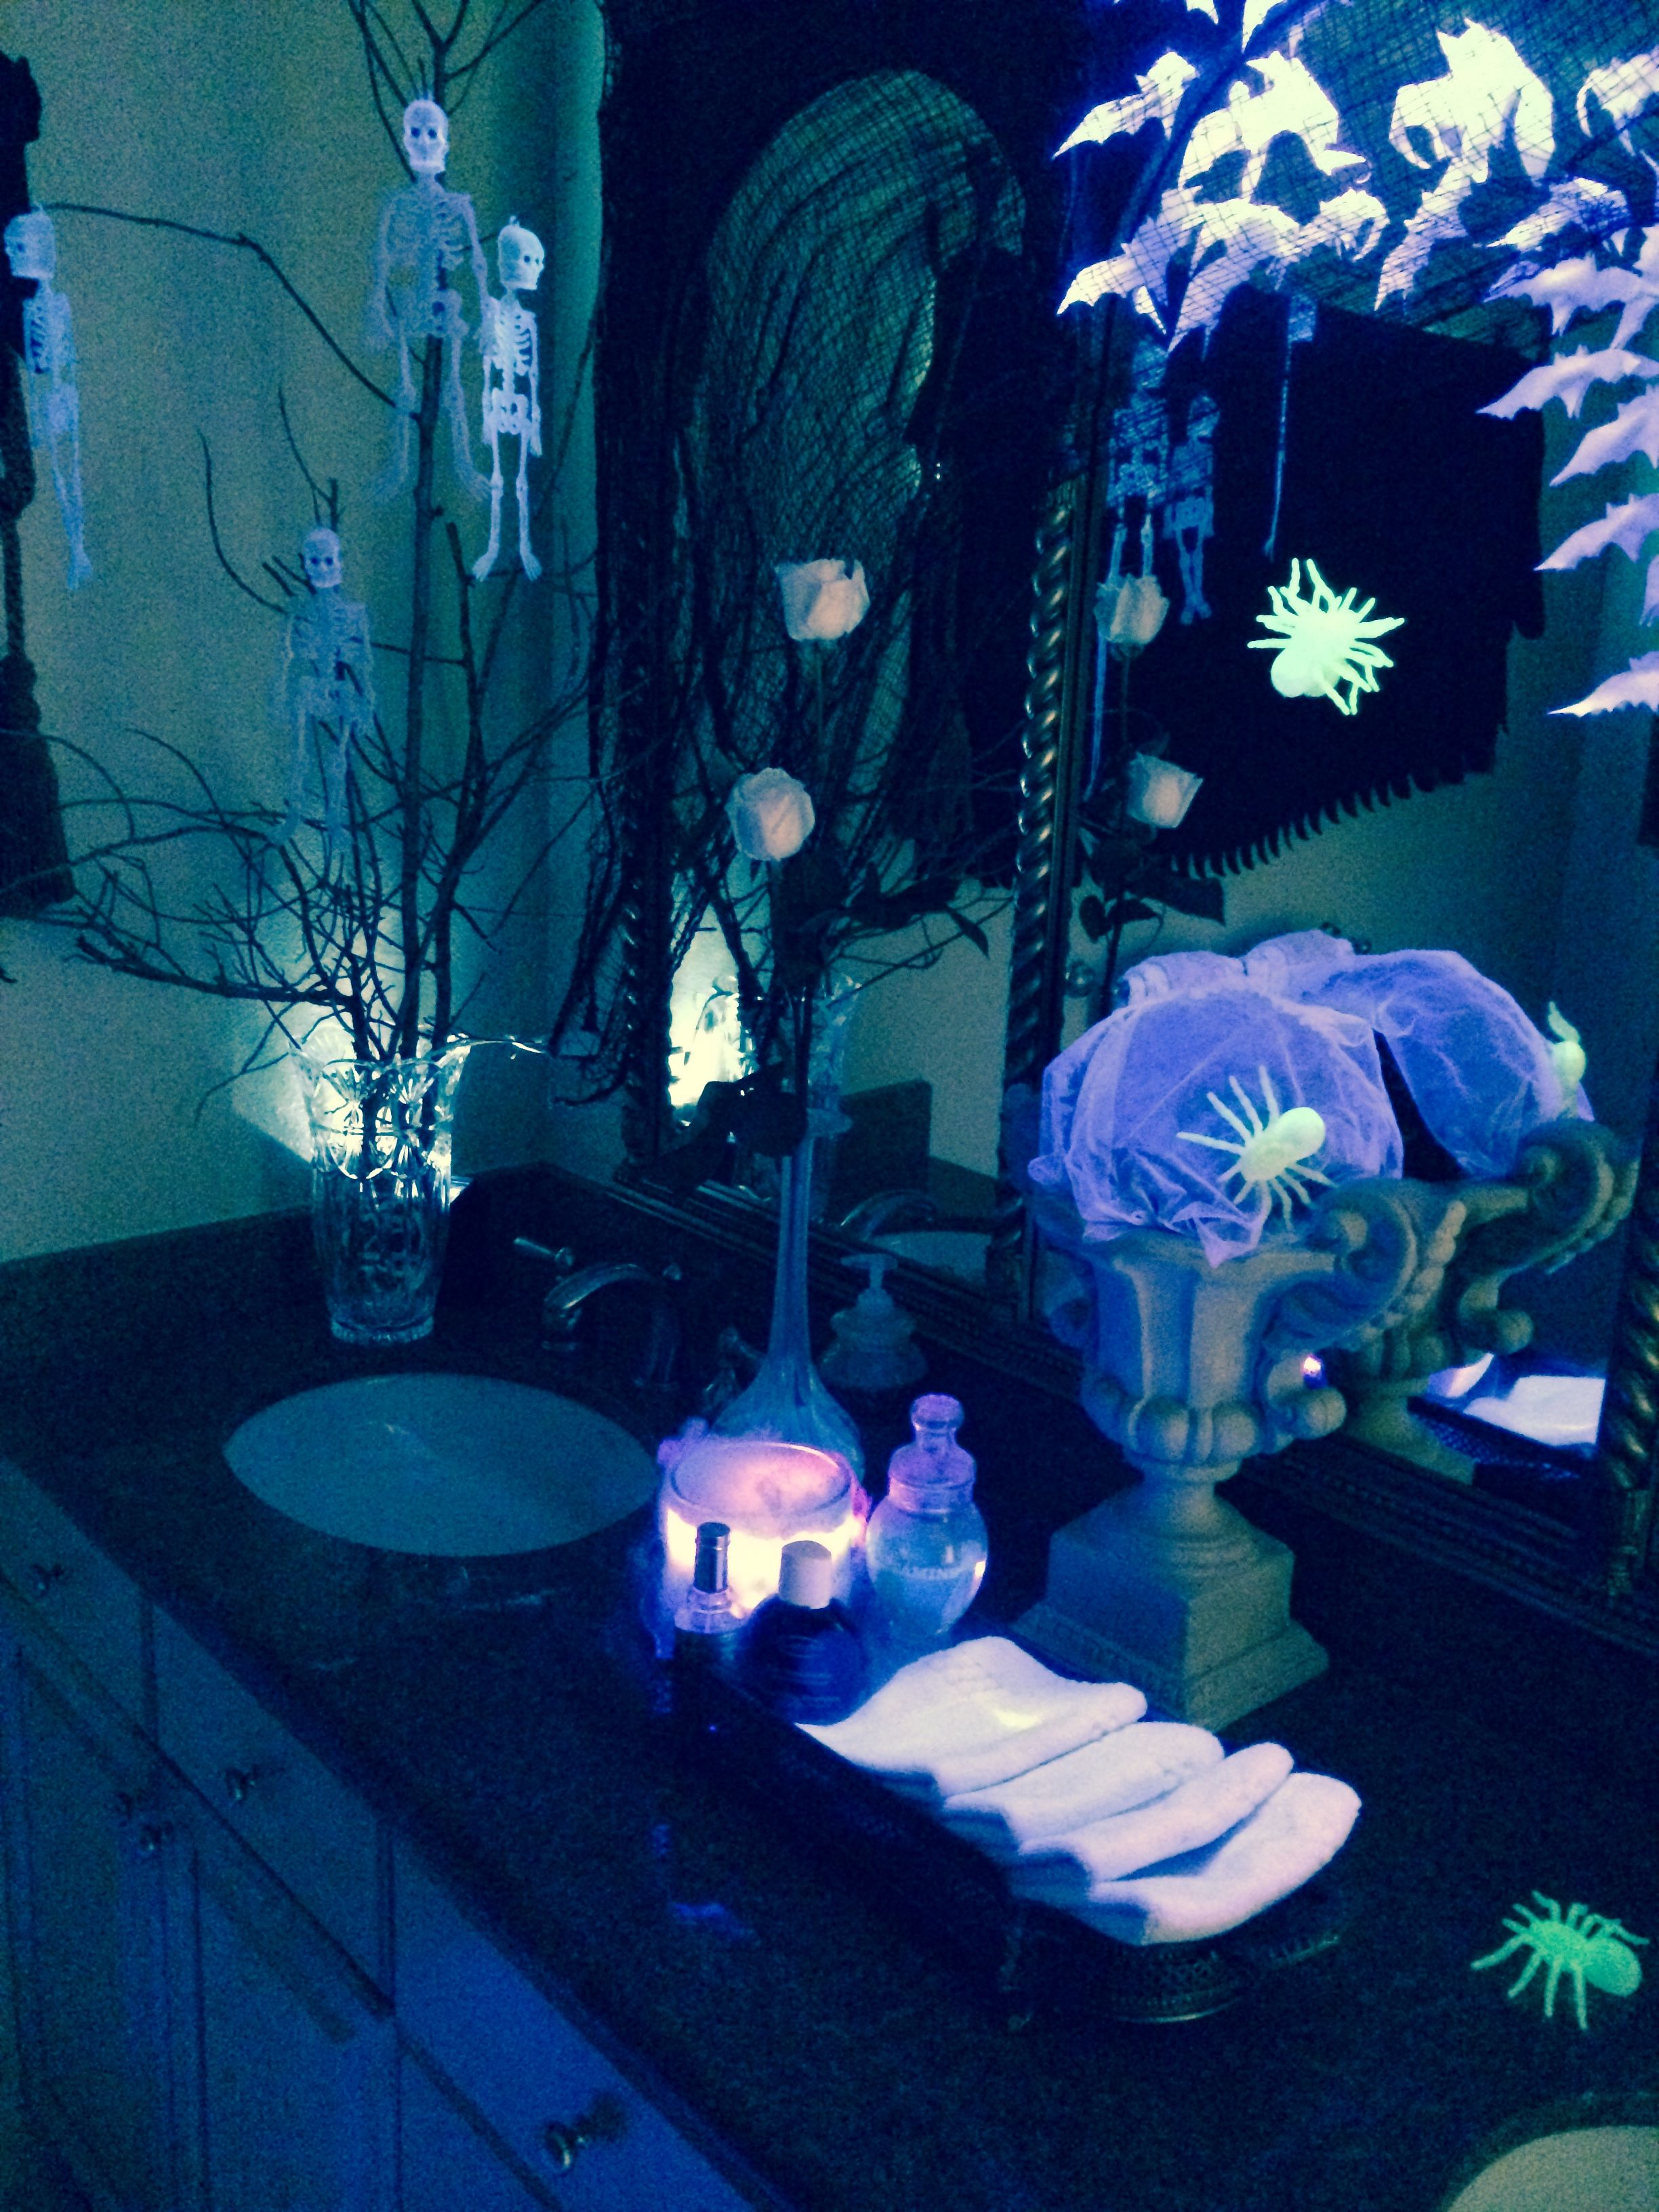 halloween bathroom decorations! blacklight + white bats + dry ice in